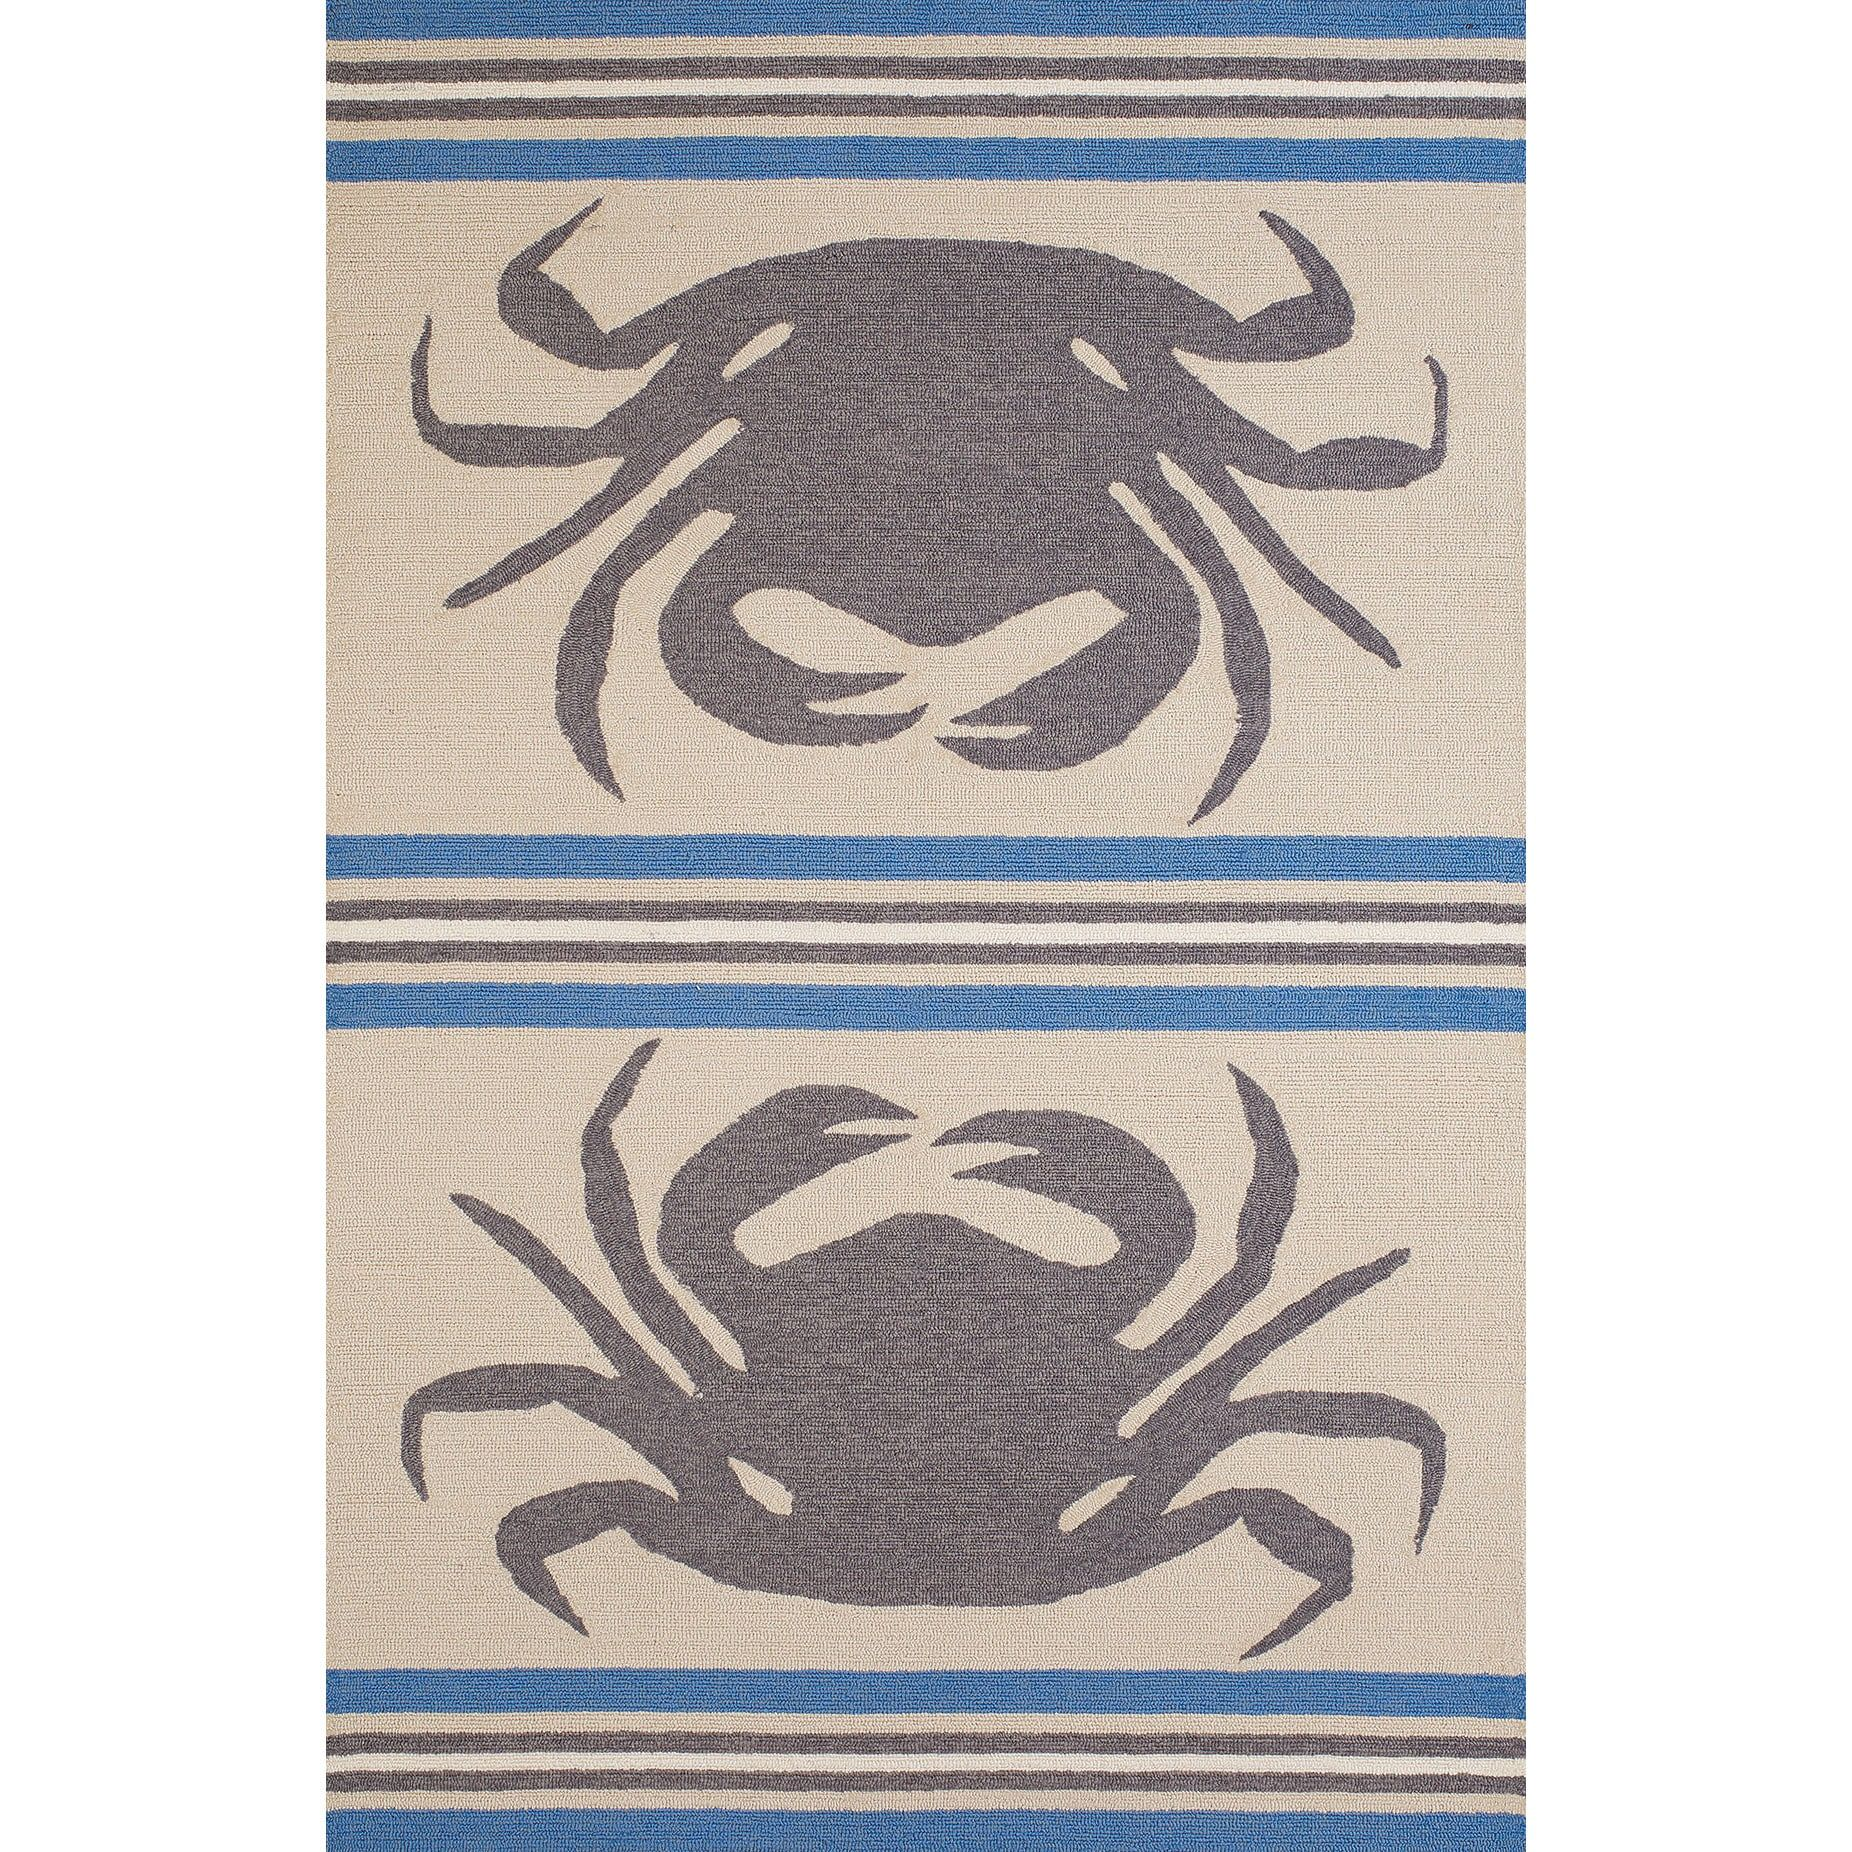 Westfield Home Panama Jack Signature Crab Shack Indoor Outdoor Area Rug 7 6 X 9 Grey Blue Beige Olefin